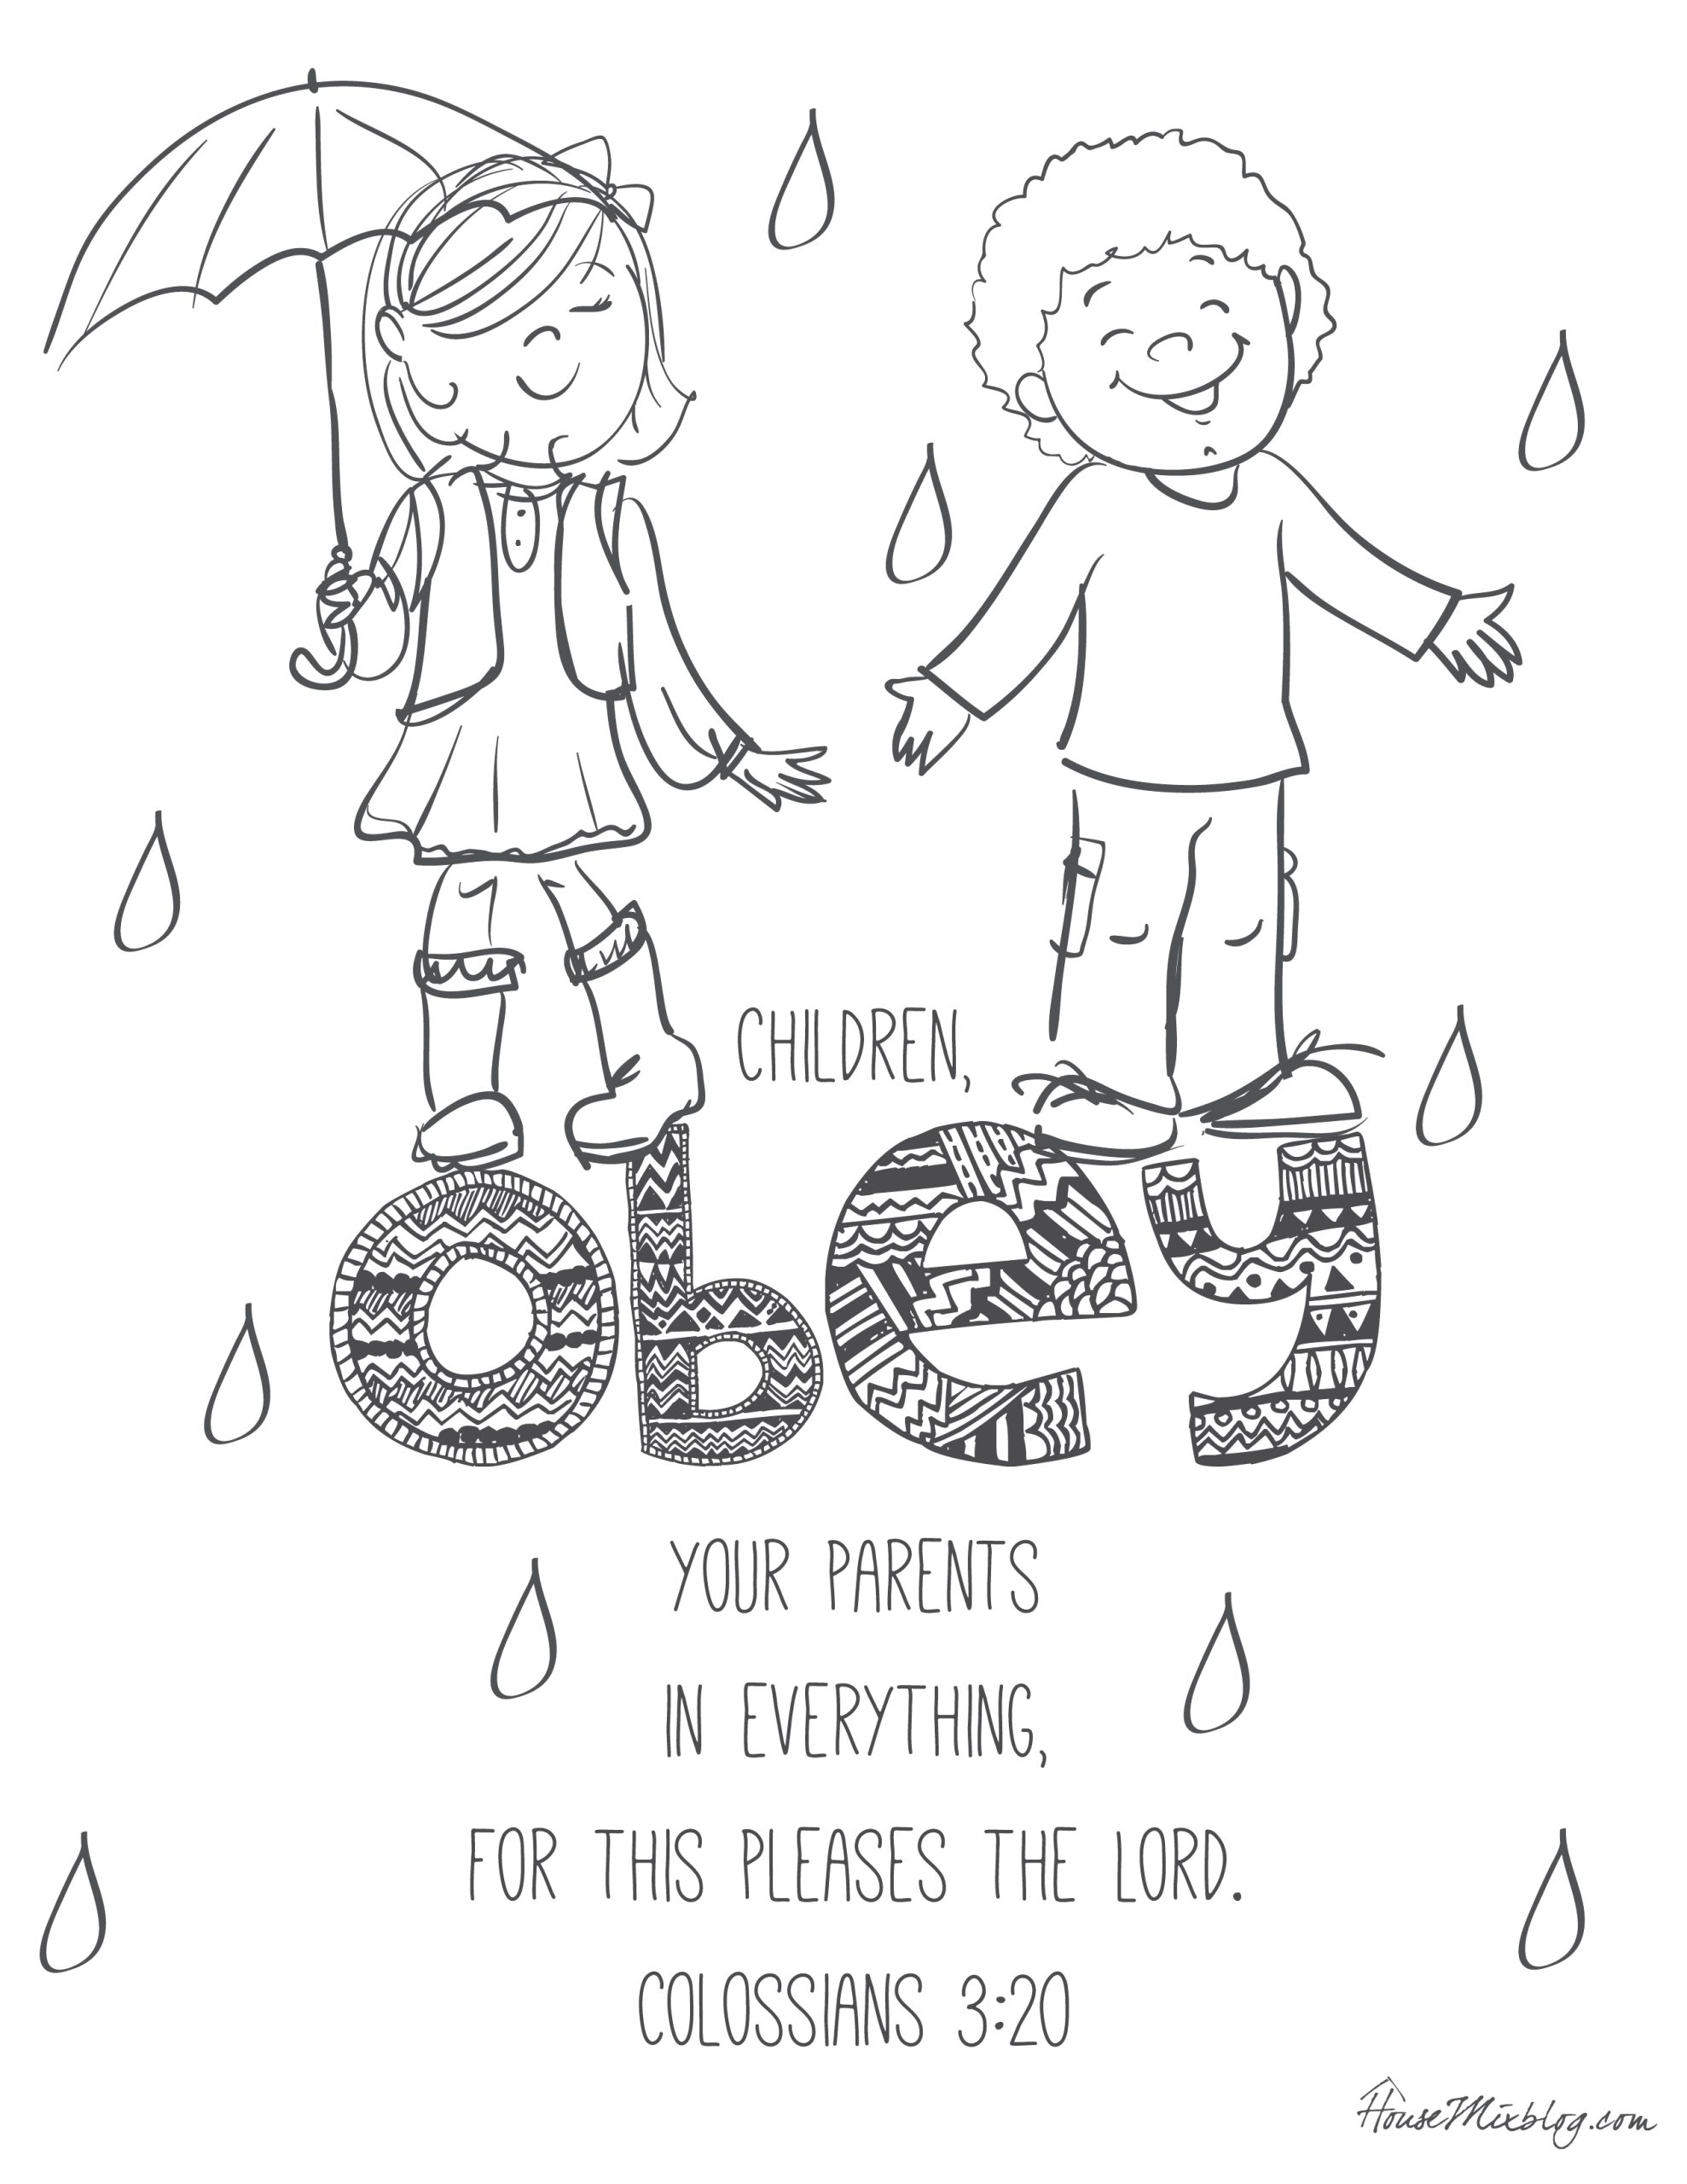 11 bible verses to teach kids with printables